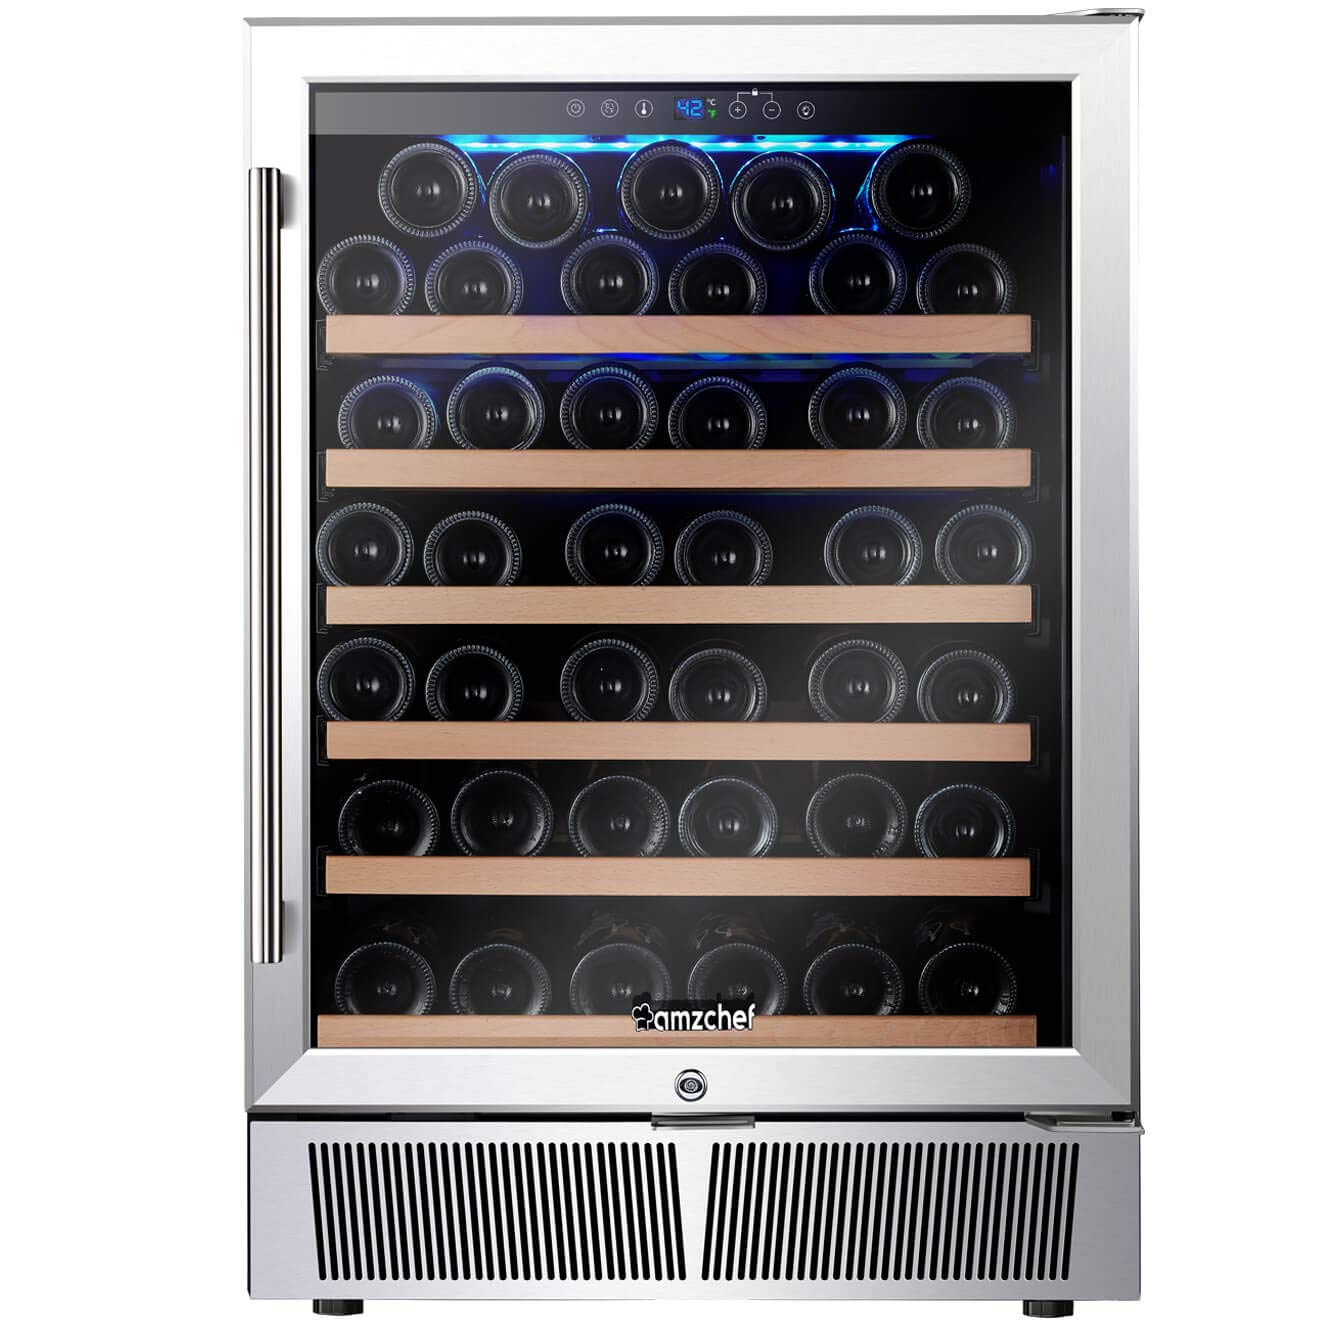 Wine Cooler Built-in or Freestanding, AMZCHEF Compressor Wine Refrigerator 52 Bottle Single Zone with Touch Control by BODEGA